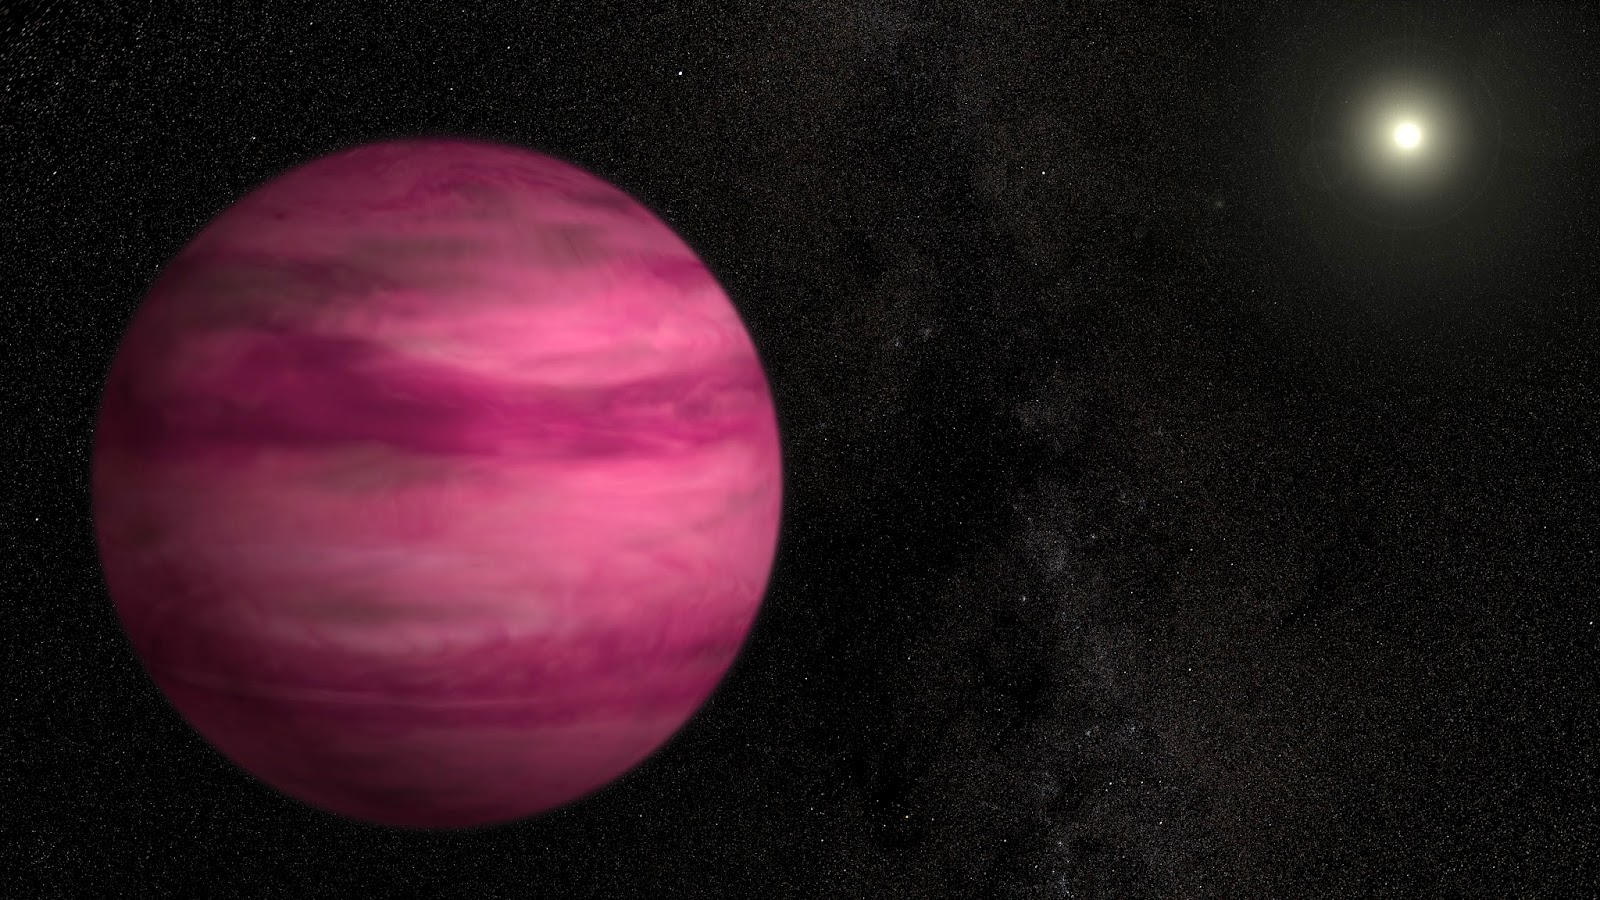 an analysis of the planets discovered by the hubble space telescope